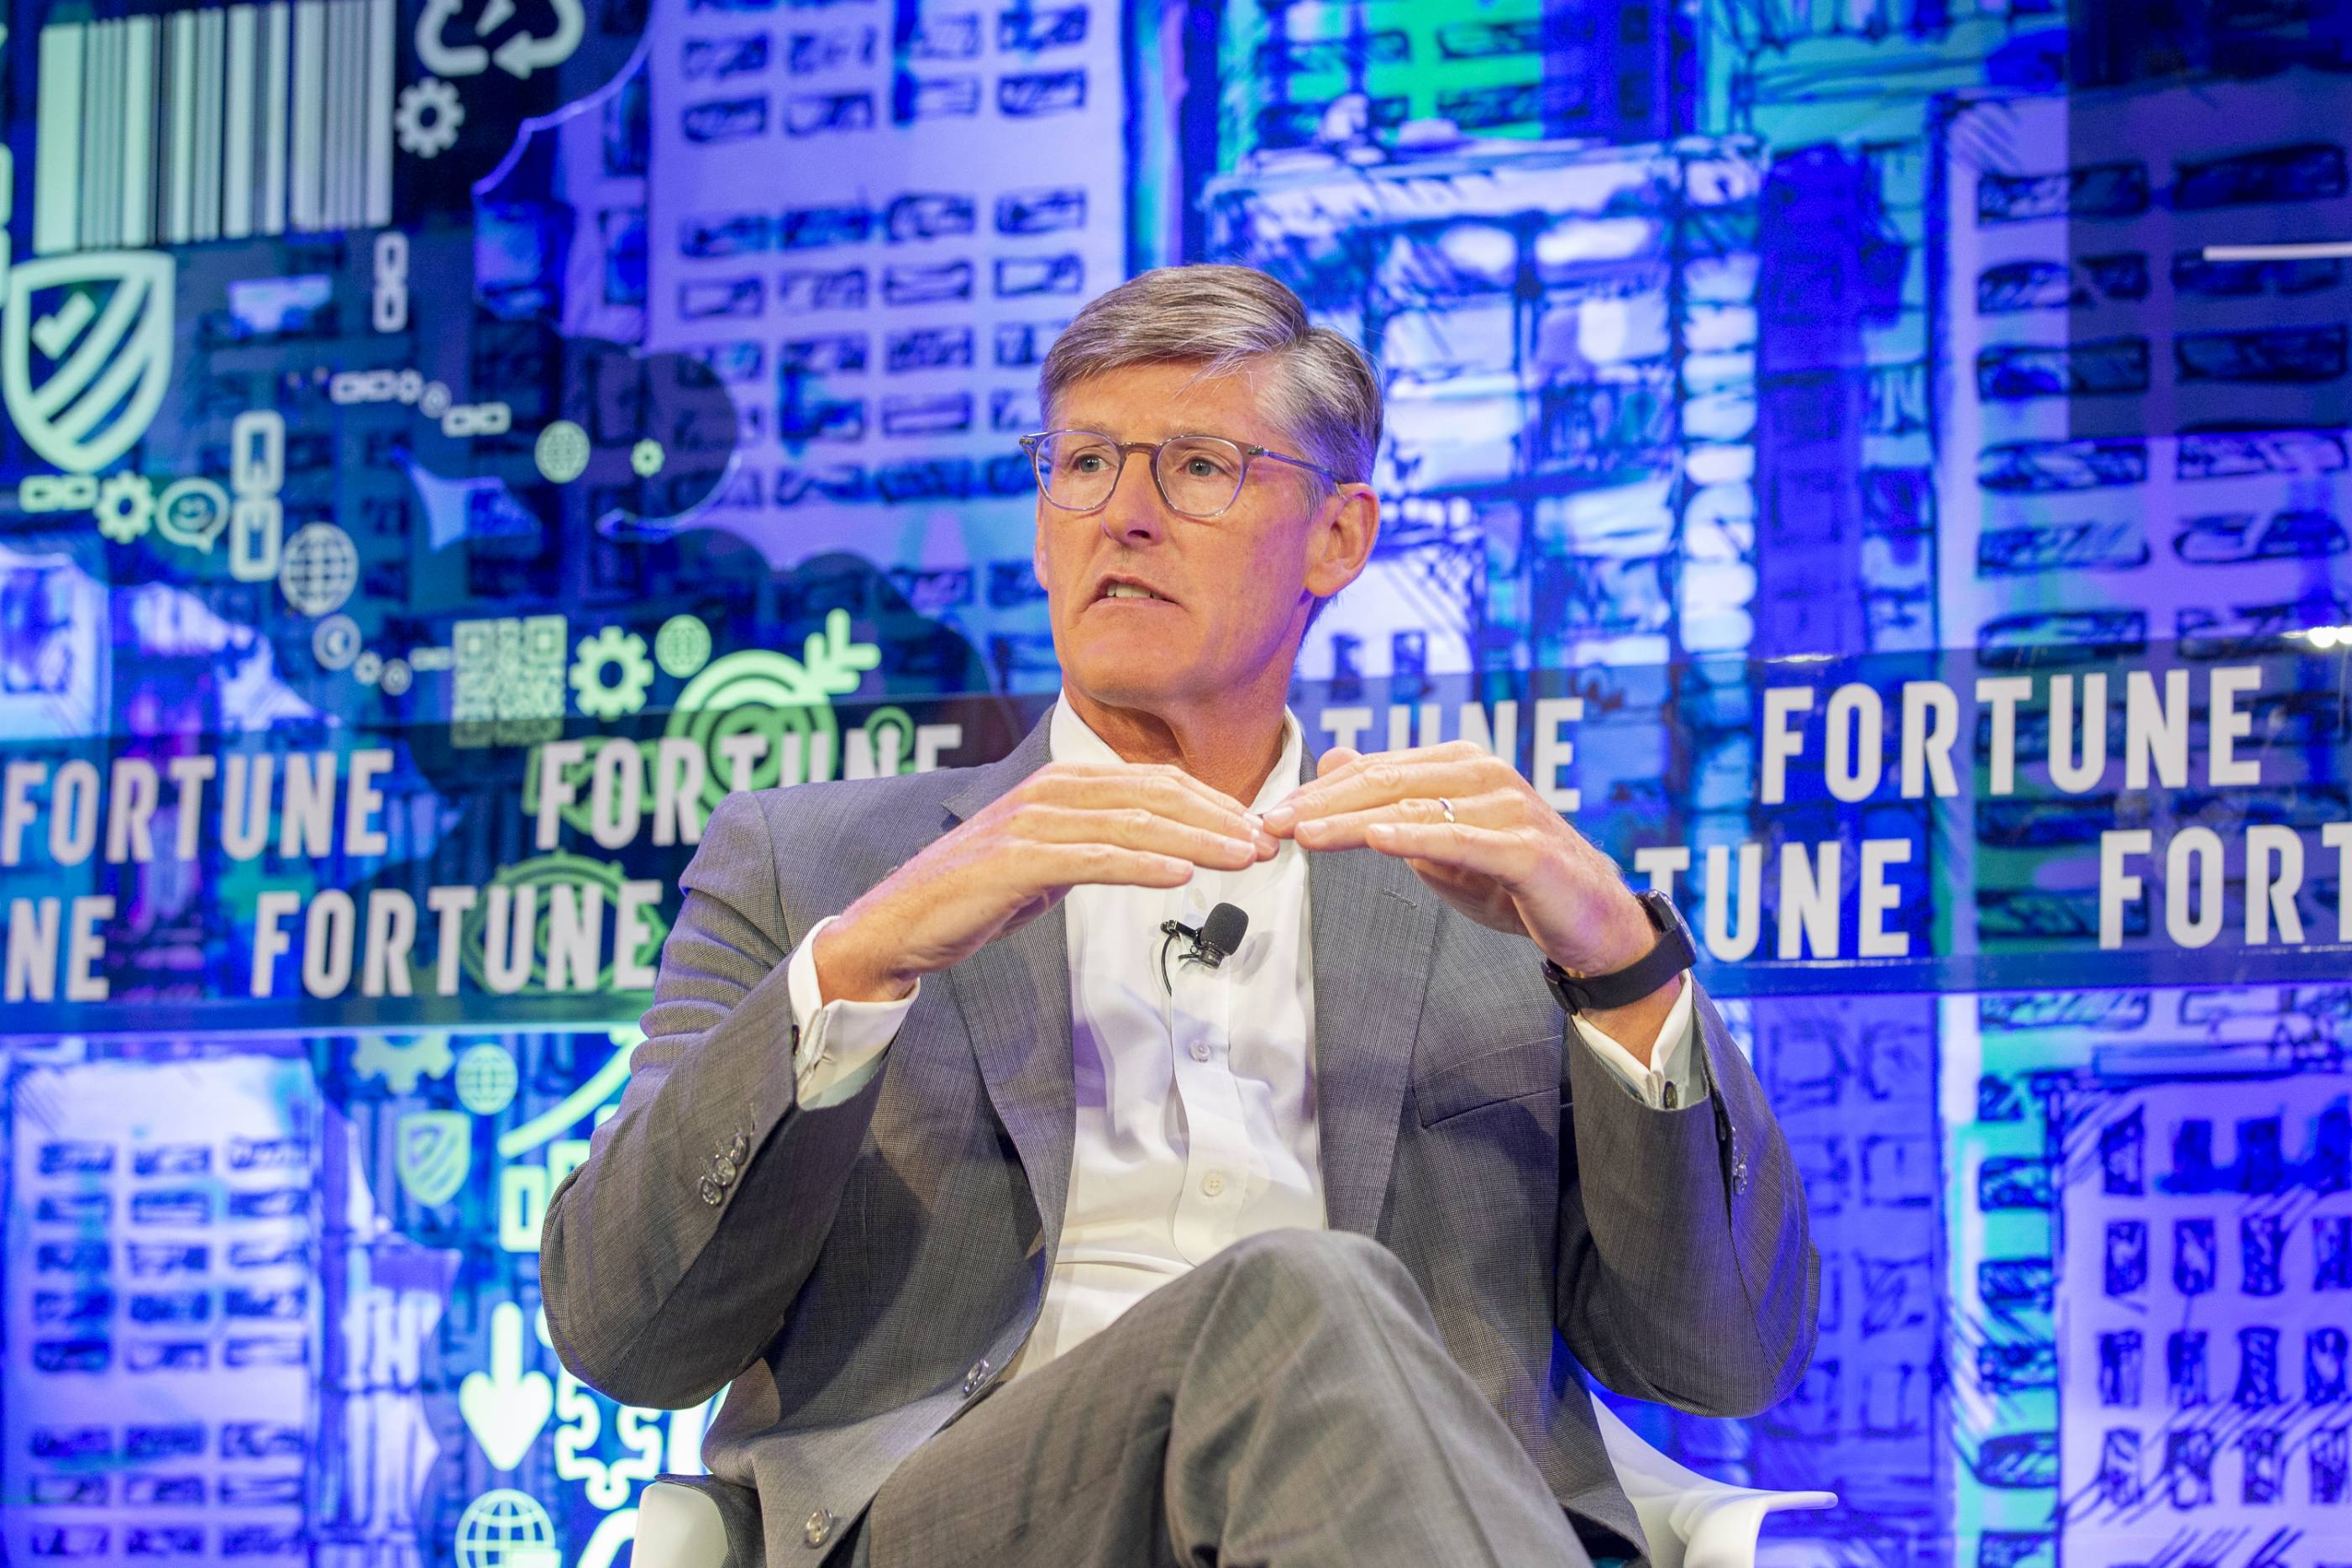 Citigroup CEO Michael Corbat on stage at the Fortune CEO Initiative.